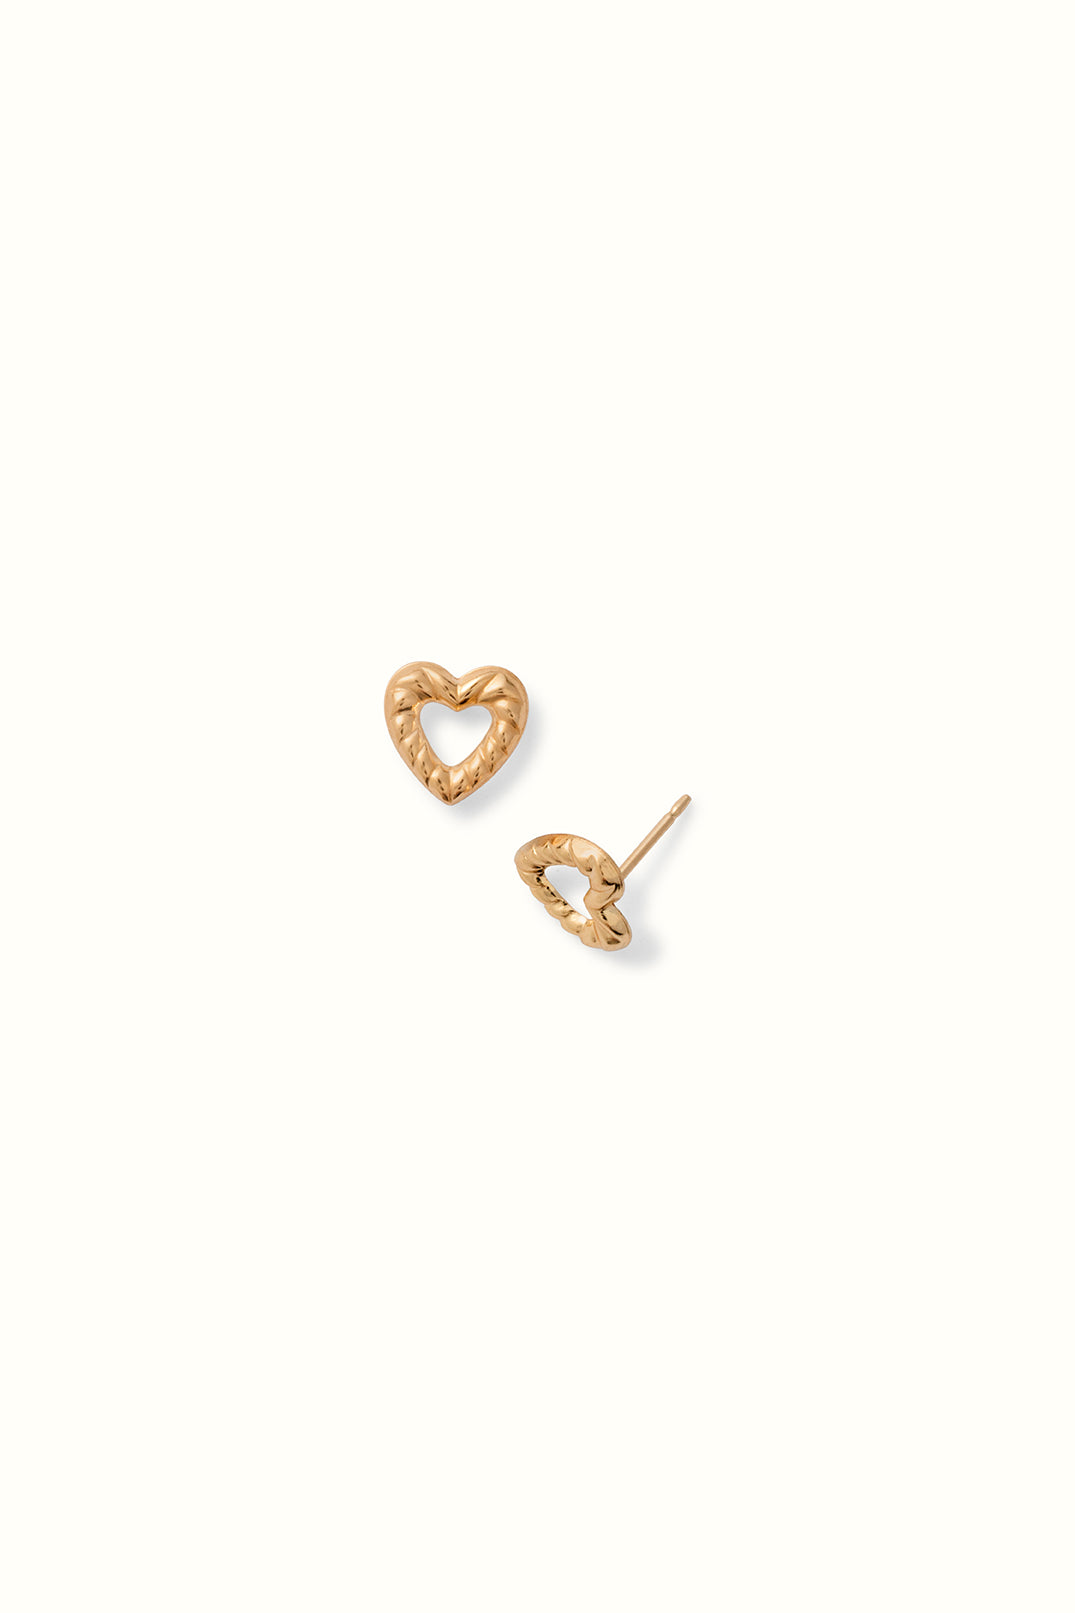 a pair of ribbed open heart stud earrings on a white background